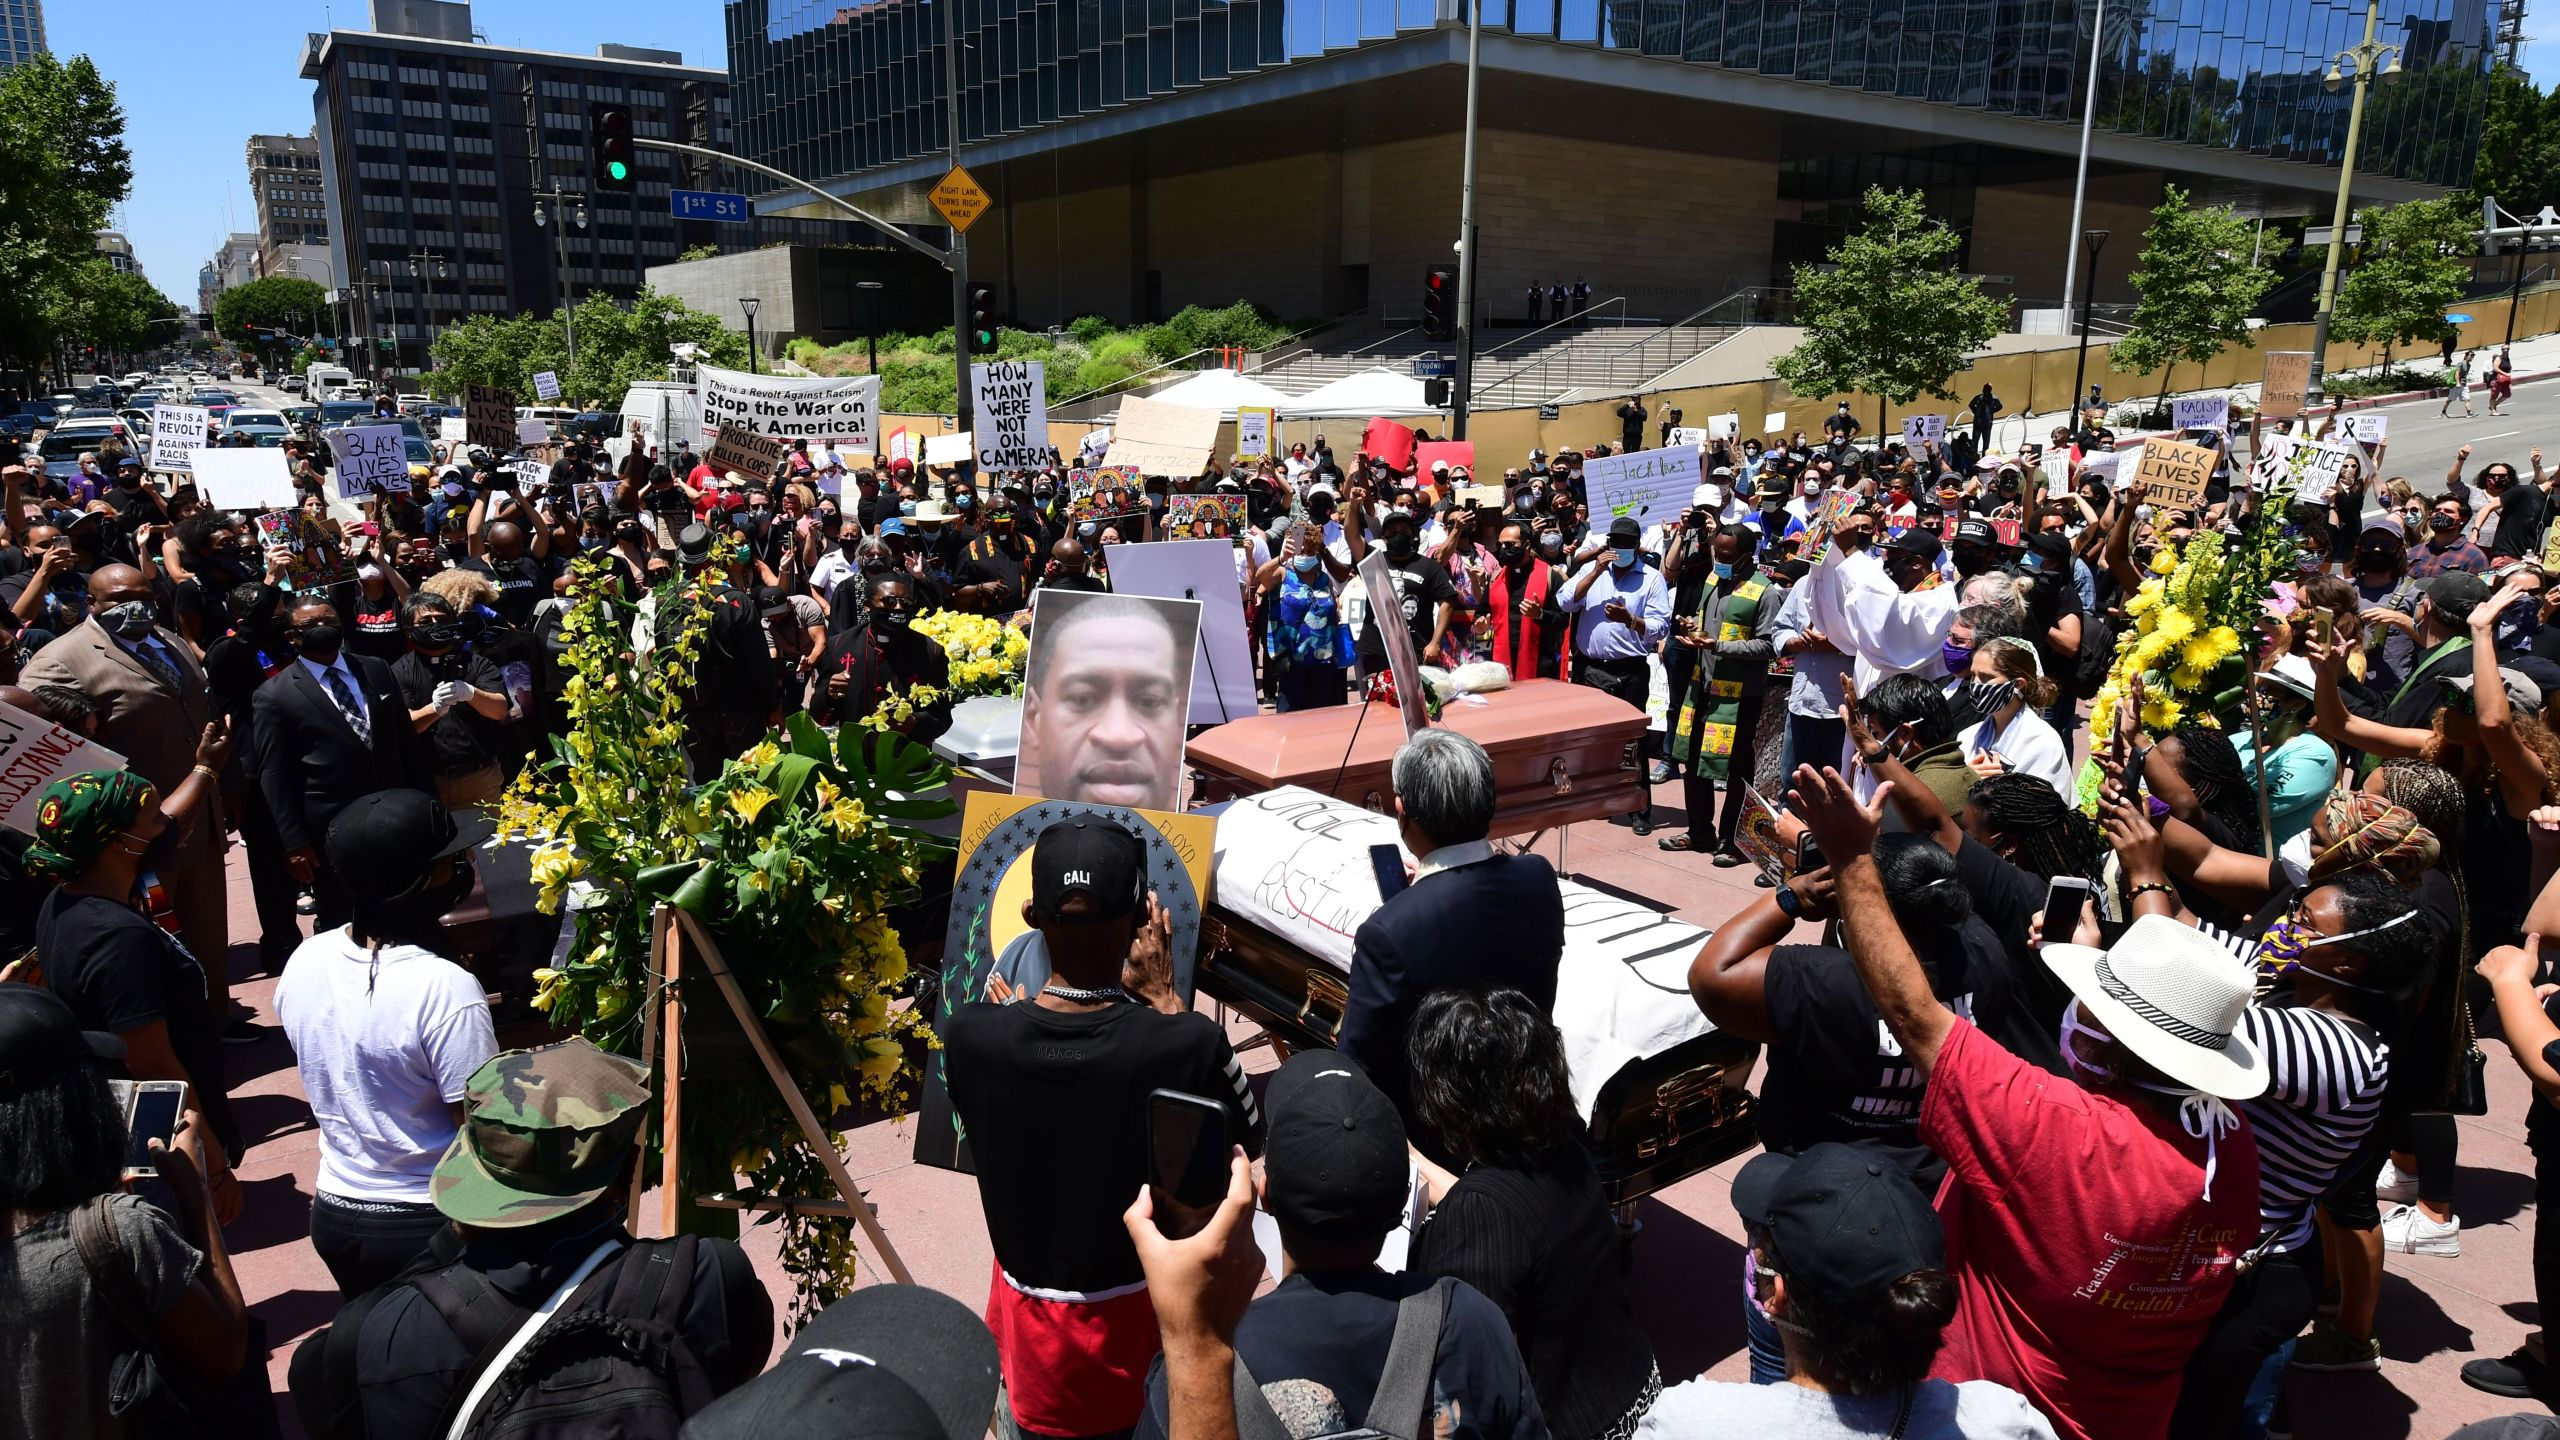 Advocates hold a memorial service honoring George Floyd in downtown Los Angeles on June 8, 2020. (FREDERIC J. BROWN/AFP via Getty Images)